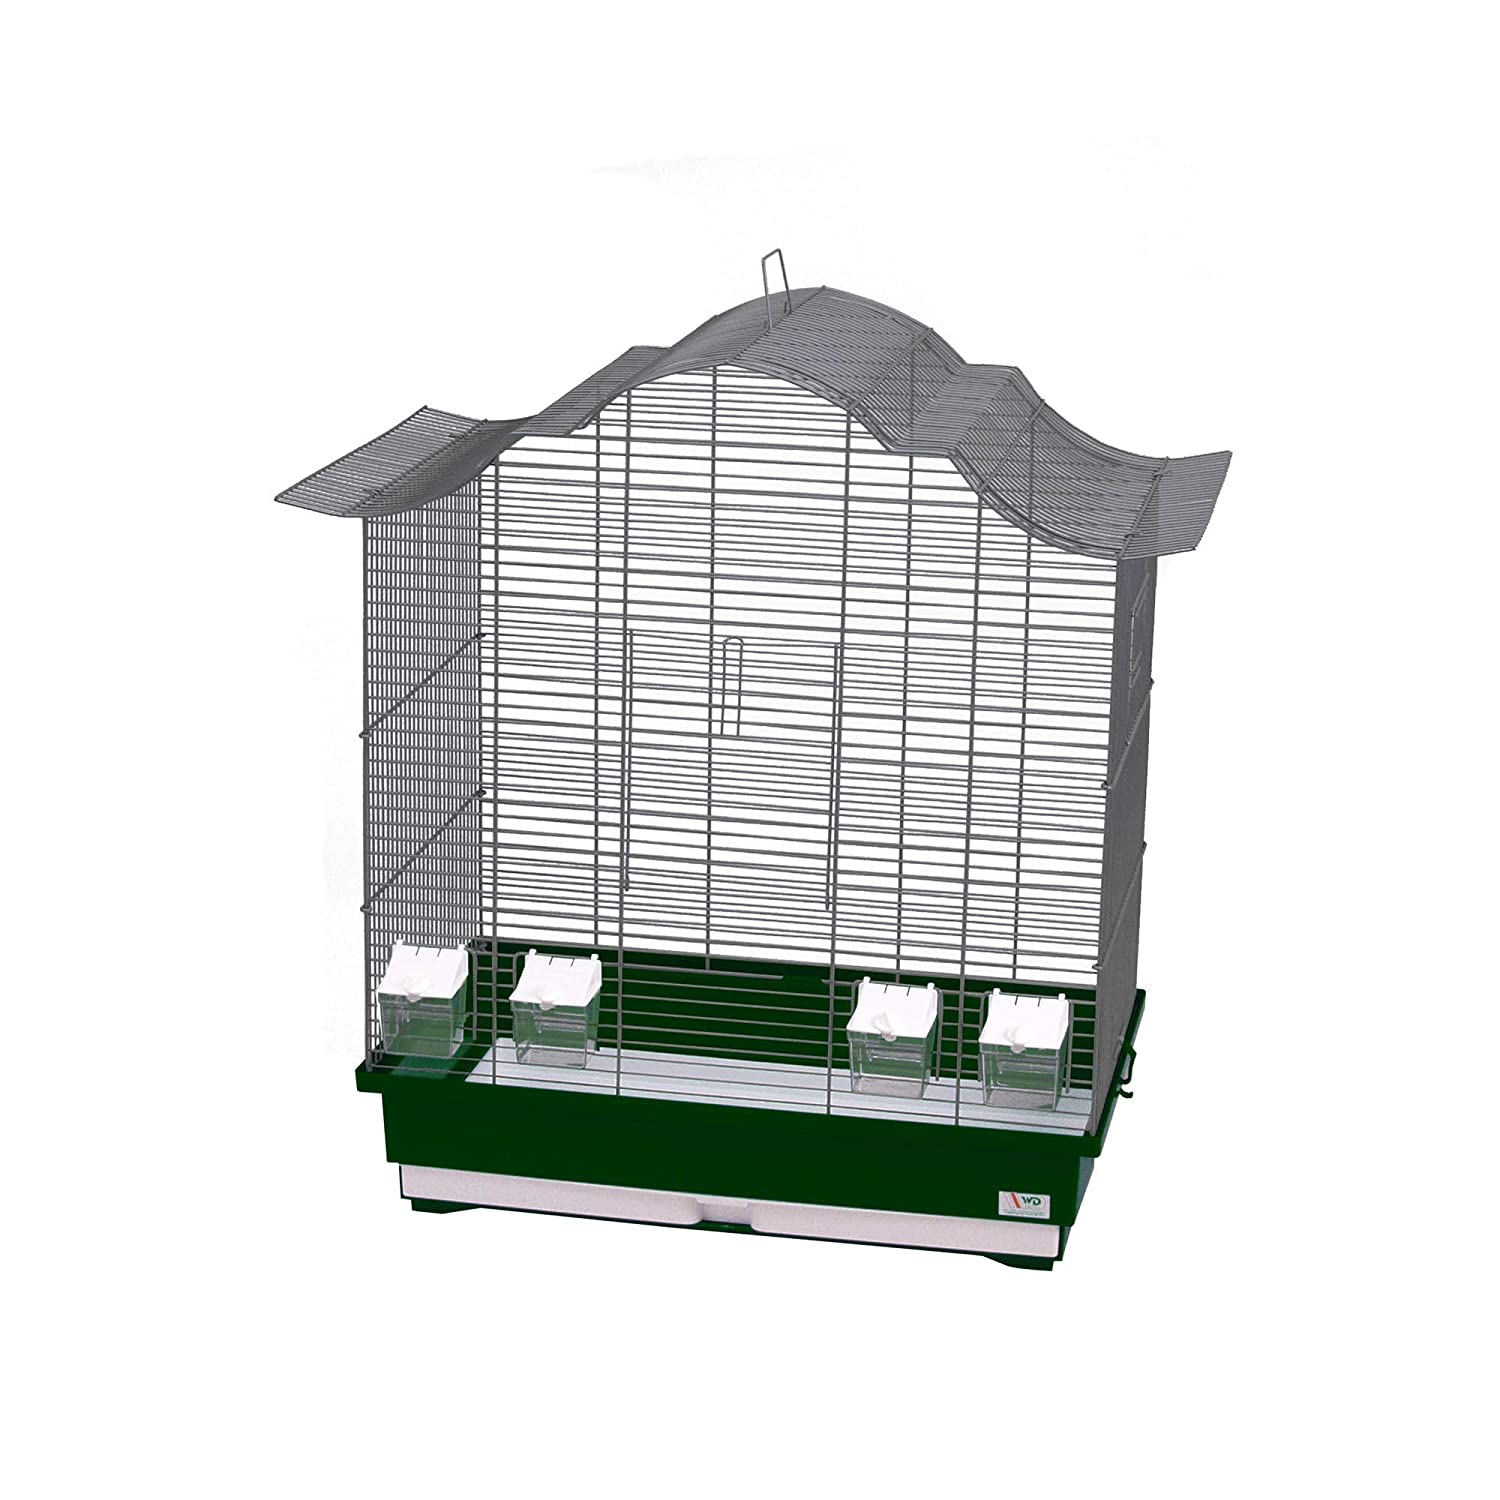 Decorwelt Asia 60 Bird Cages XXL Green Exterior Dimensions 70 x 42 x 72.5 cm Holiday Travel Cage Accessory Budgie Canary Cage Food Bowl Plastic Bird Model